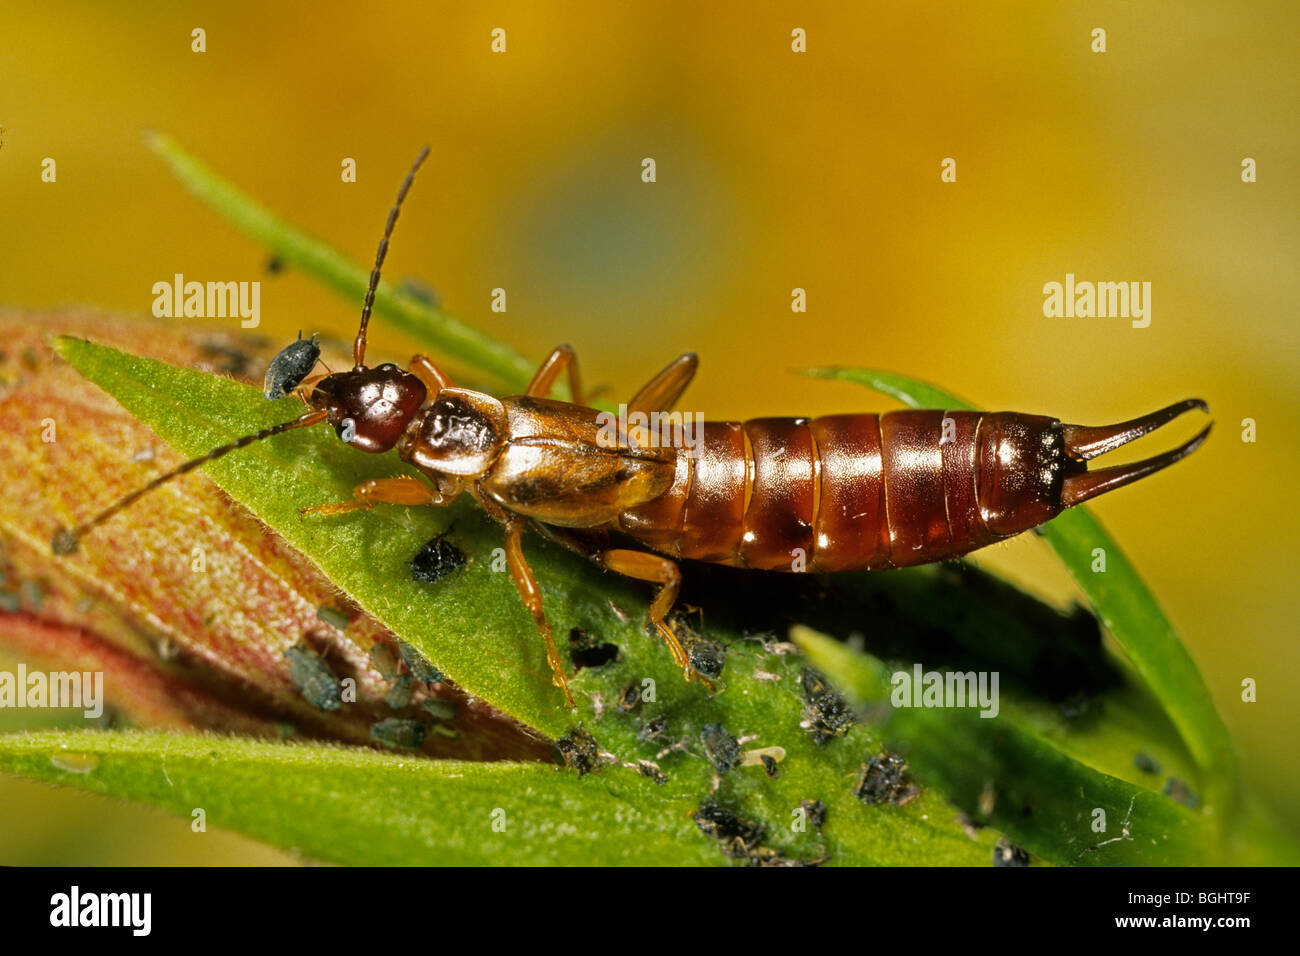 Common Earwig (Forficula auricularia), female eating aphid. - Stock Image